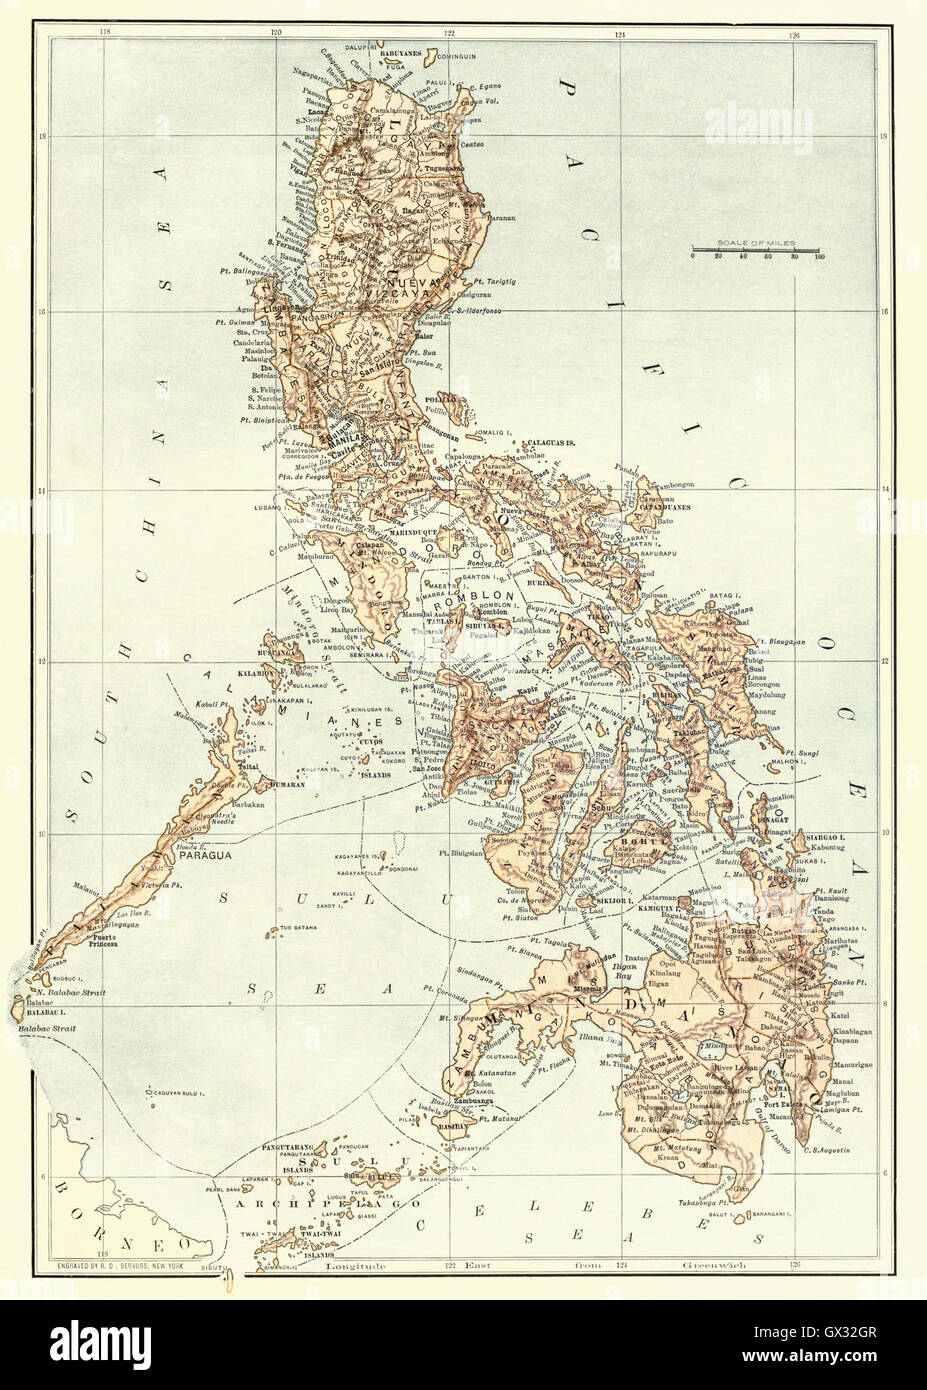 La carte des Philippines à la fin du xixe siècle. Photo Stock